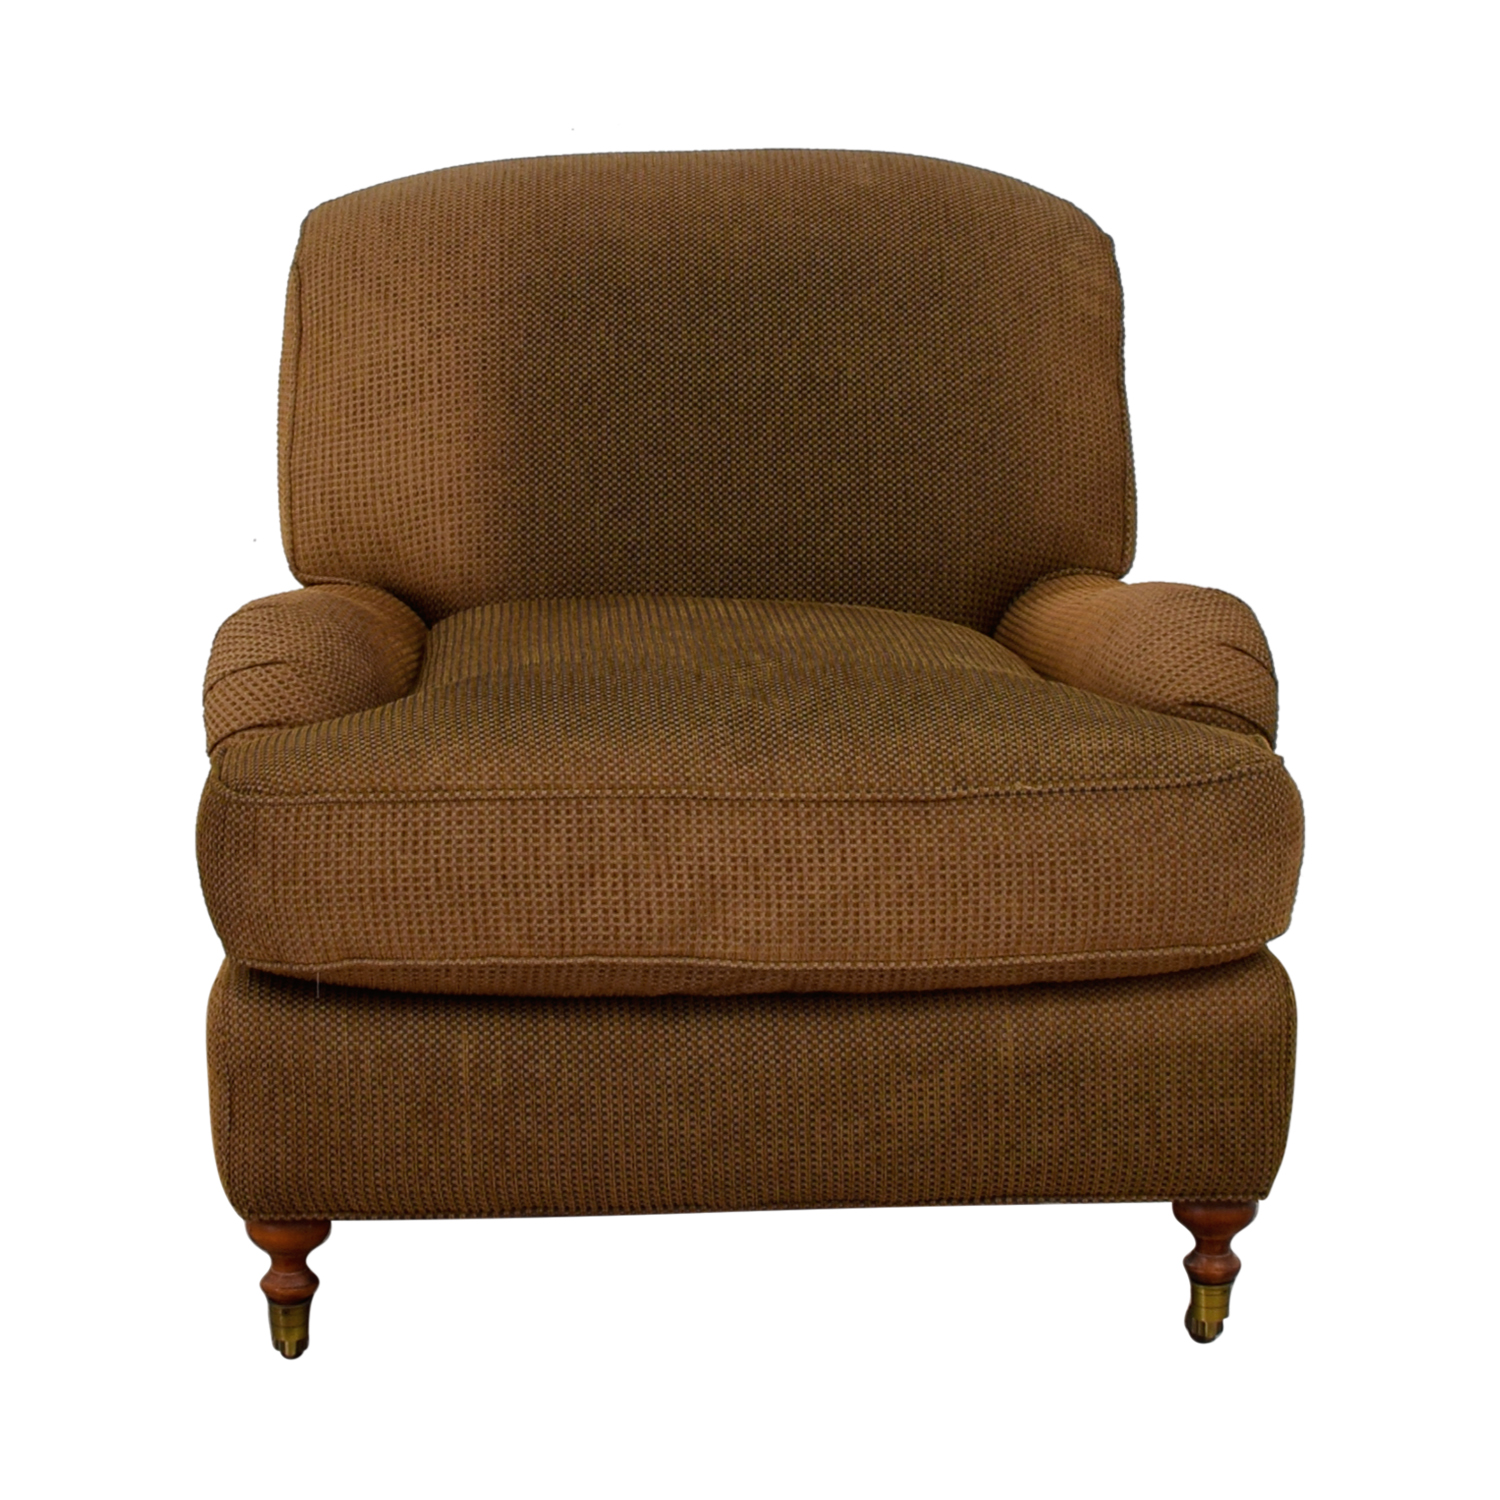 Brown Comfort Accent Chair / Accent Chairs